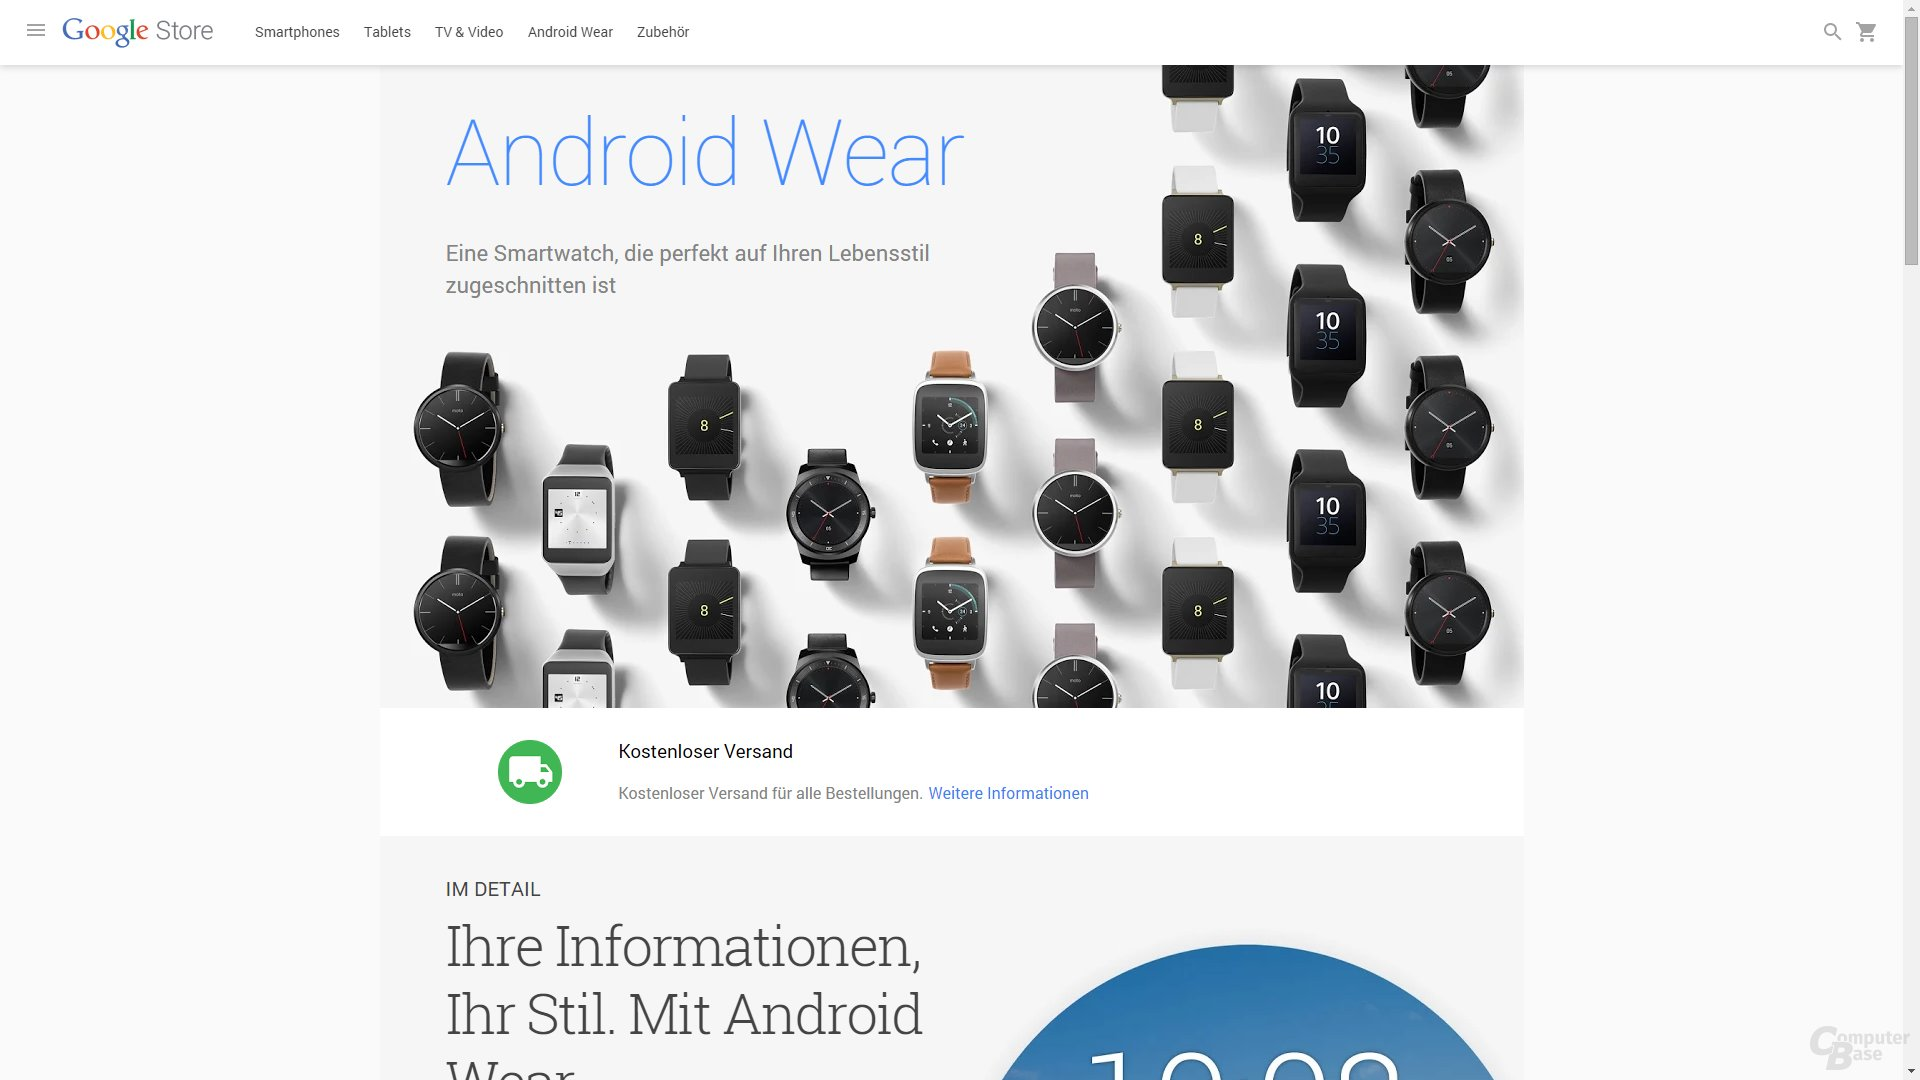 Google Store – Android Wear